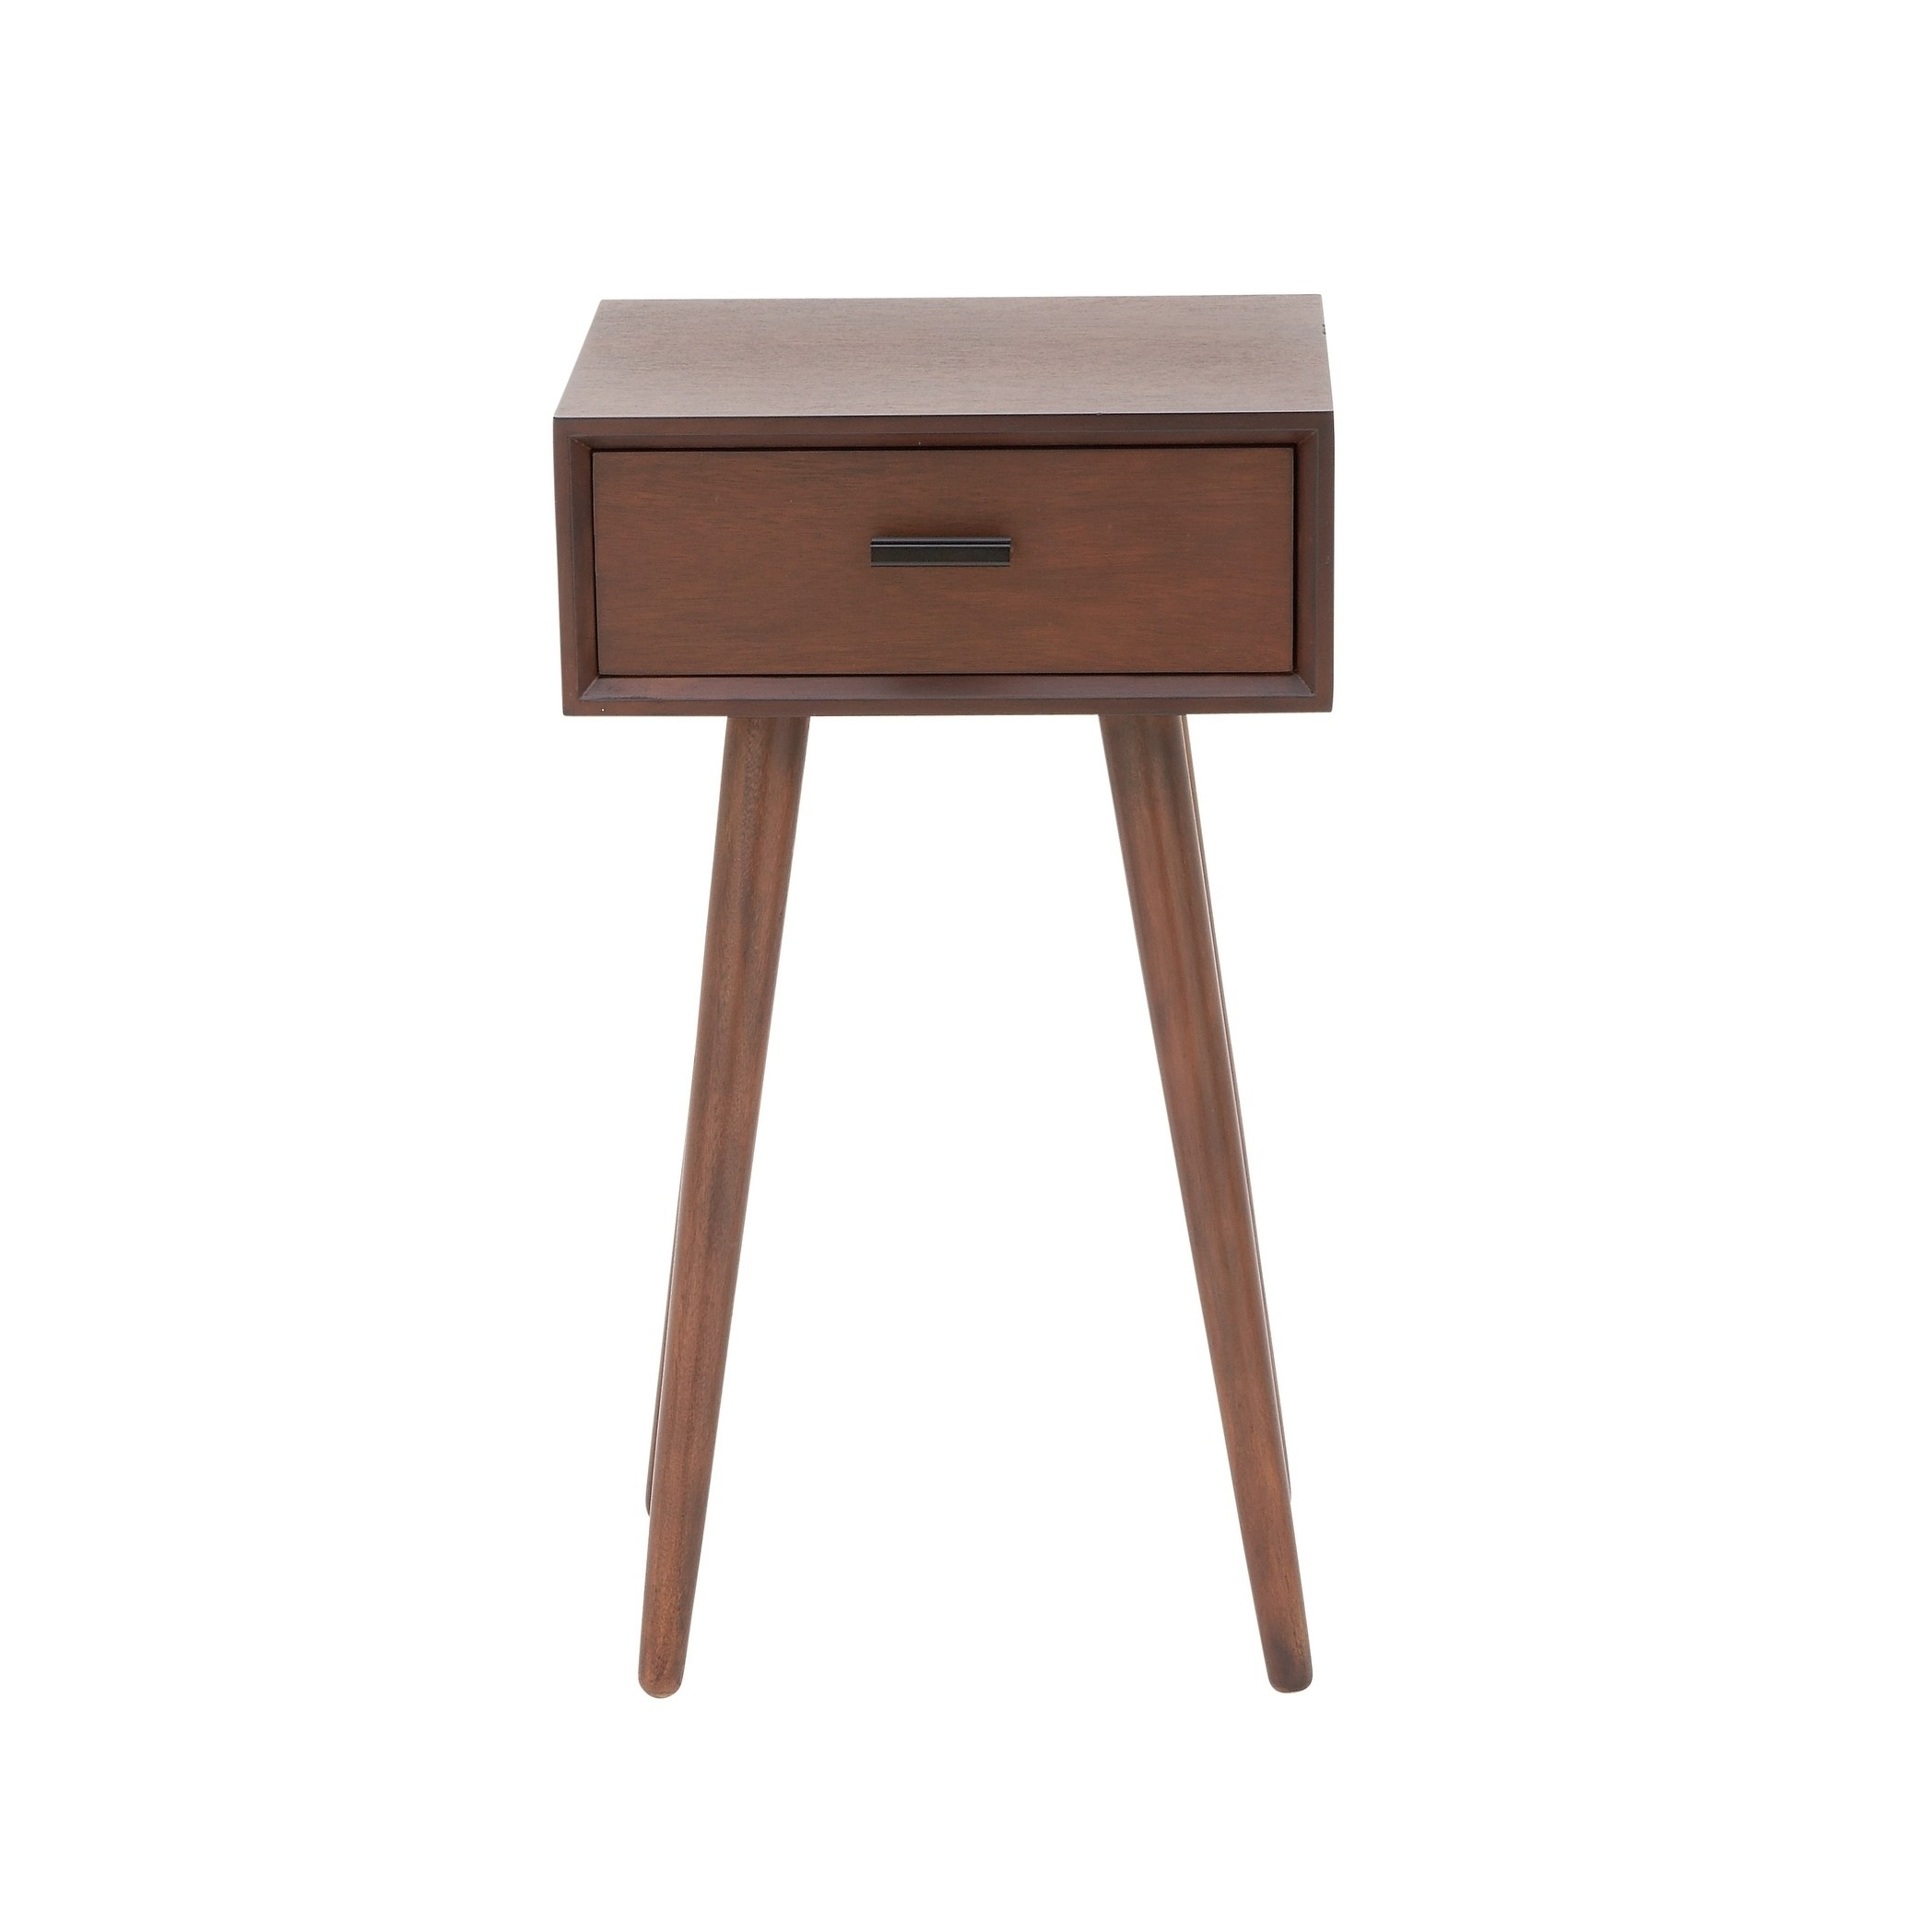 modern inch brown wooden accent table with drawer studio wood free shipping today plastic patio umbrella hole round pine end loveseat clearance pottery barn display coffee black